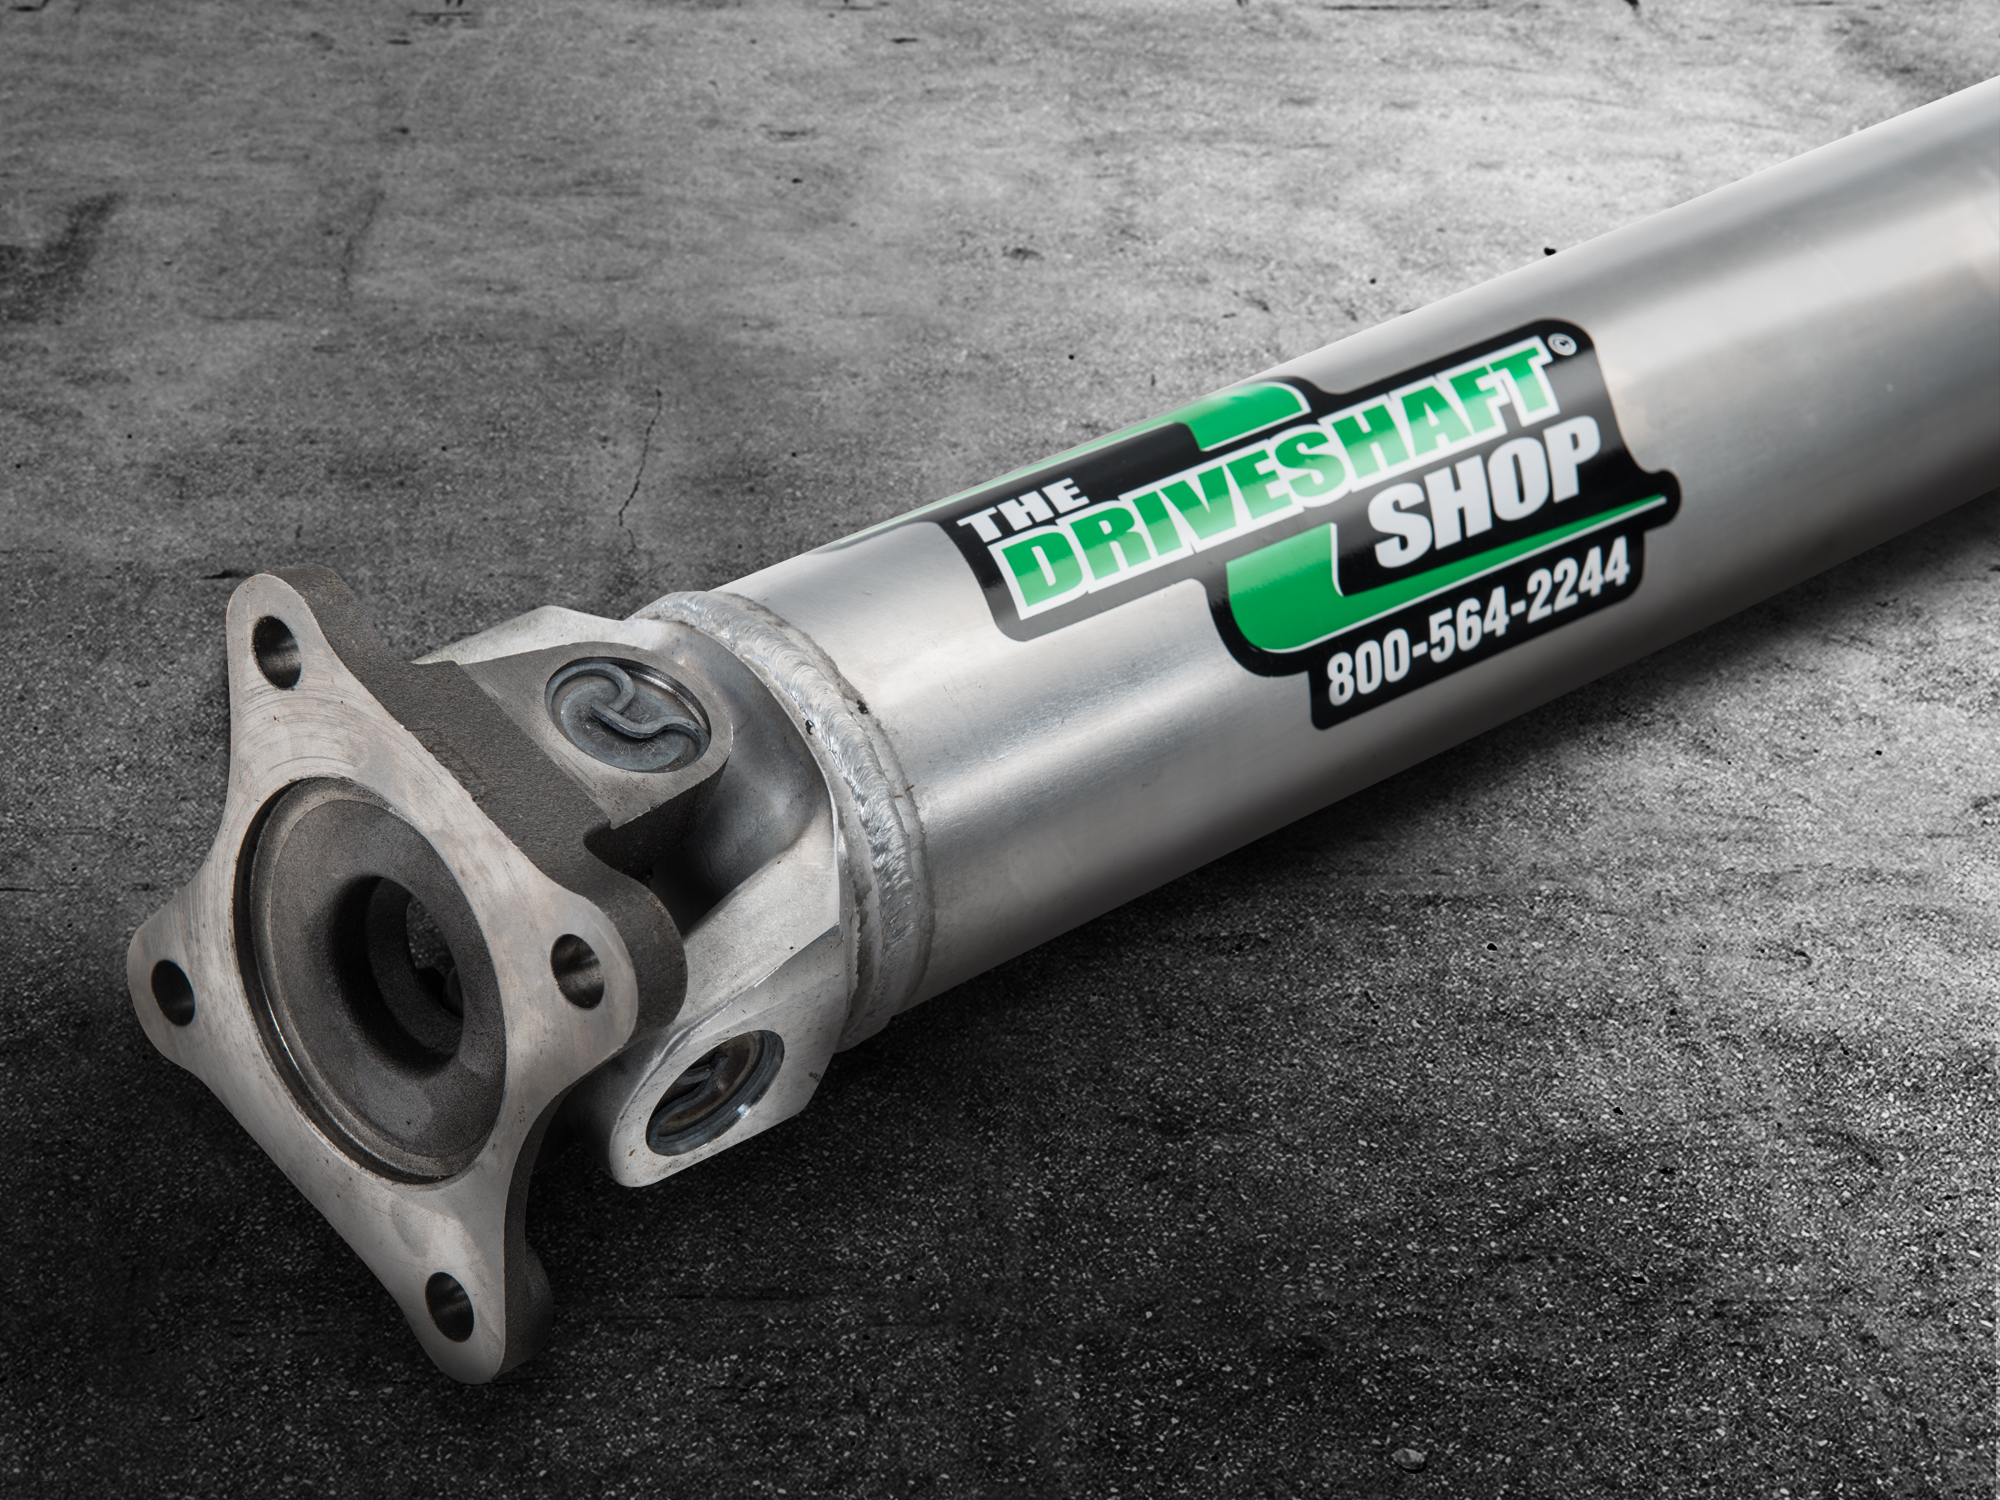 Switching To An Aftermarket Driveshaft Like The